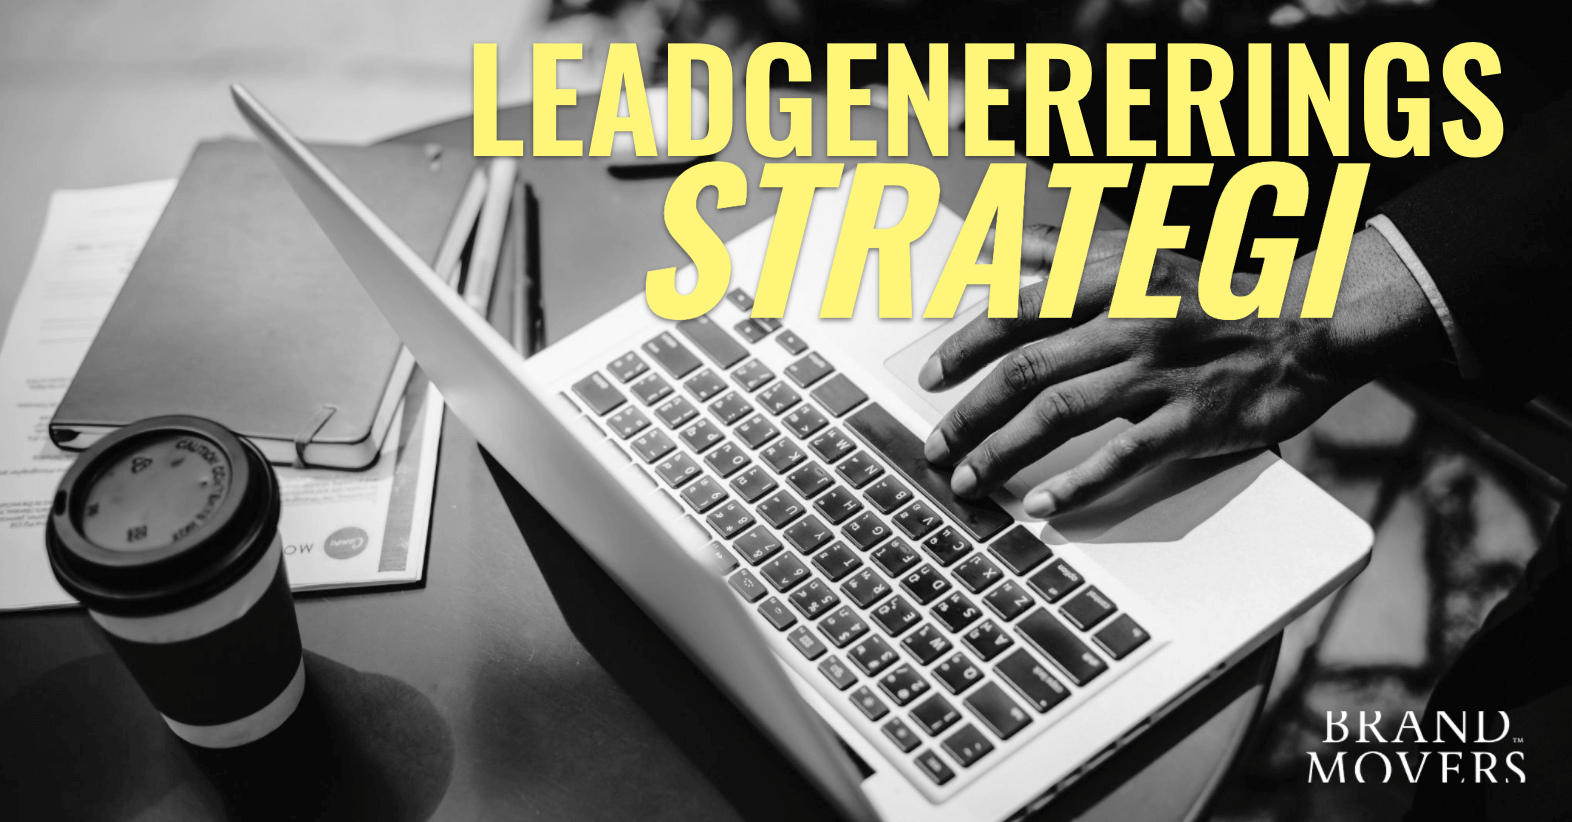 Strategi for leadgenerering: Sådan konverterer du trafik på dit website til varme leads med content marketing